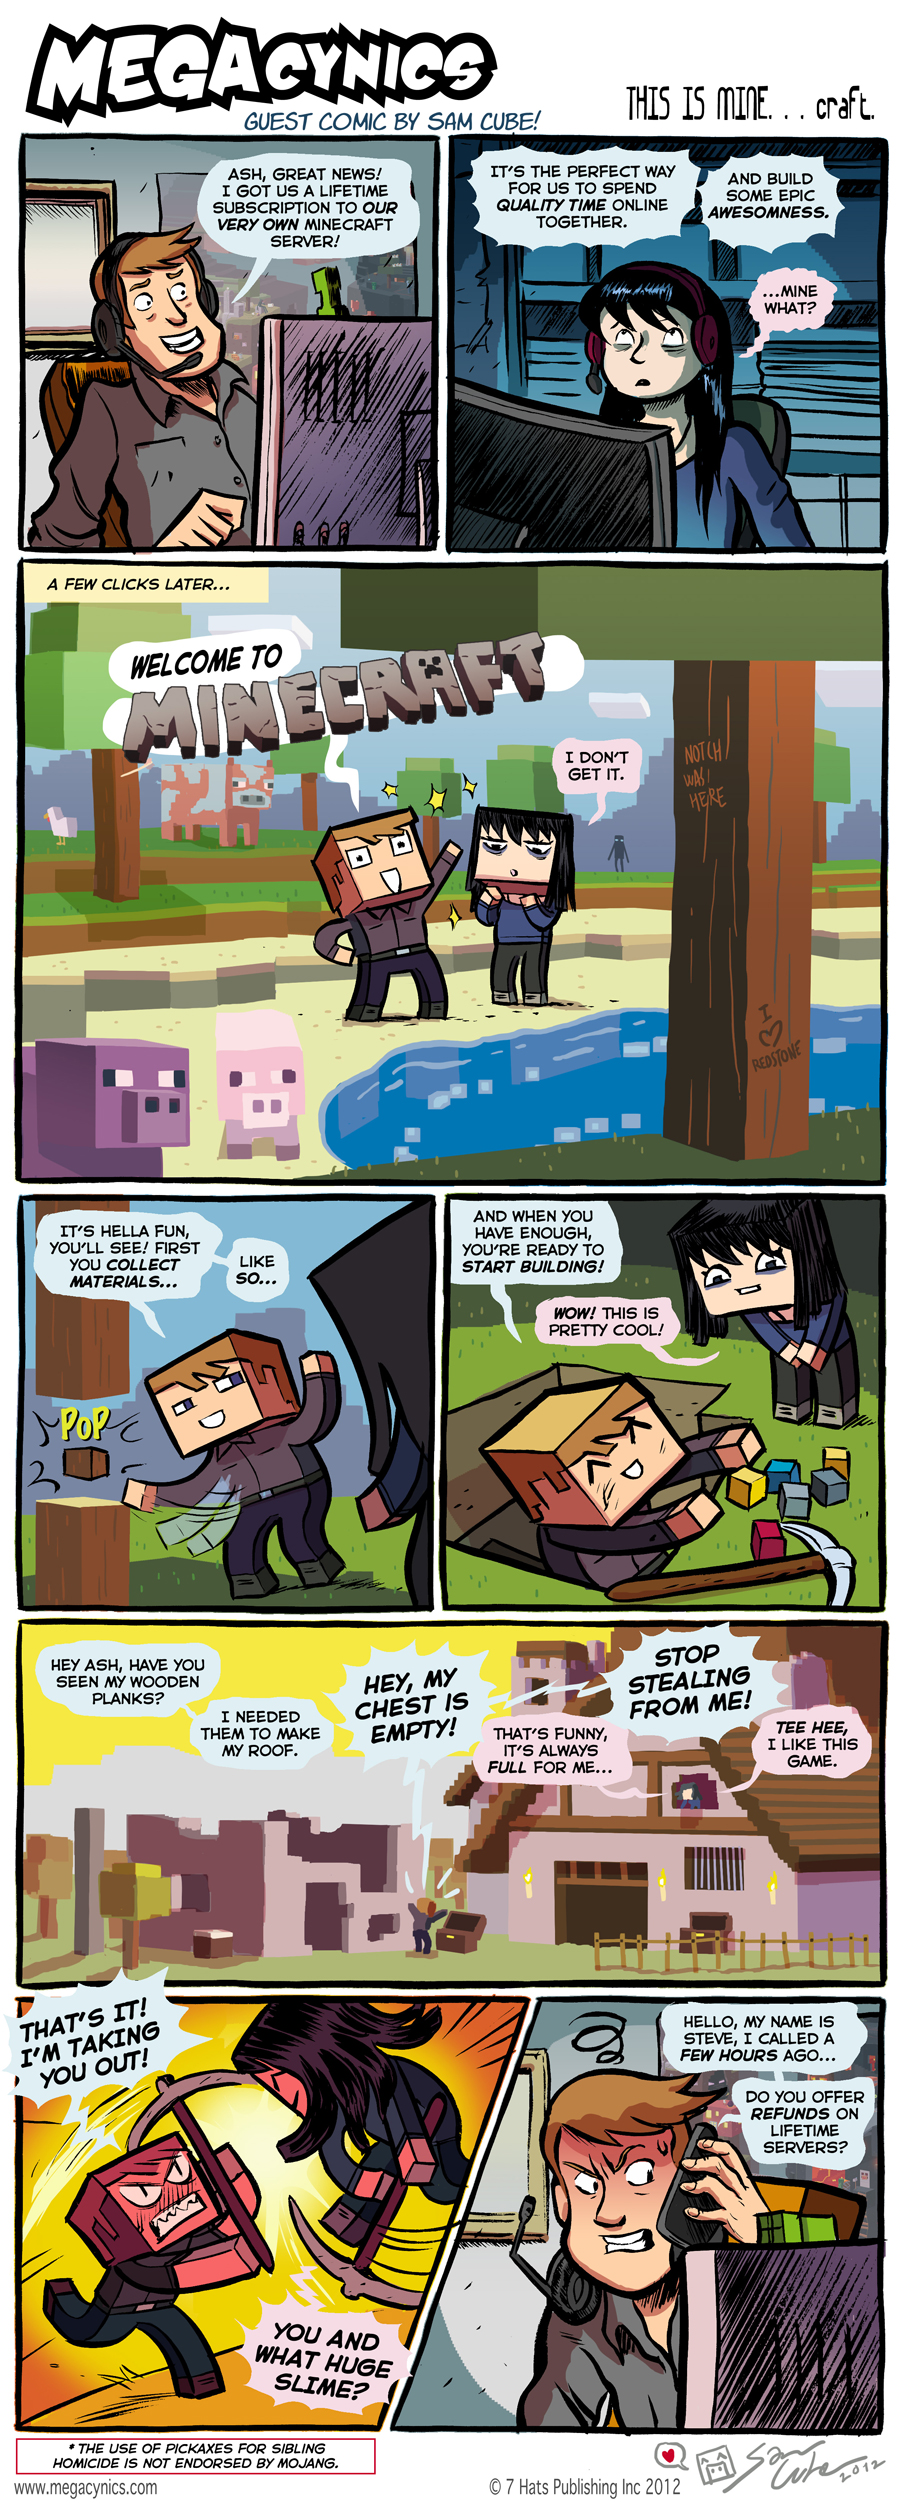 MegaCynics: THIS IS MINE... craft (Feb 10, 2012)